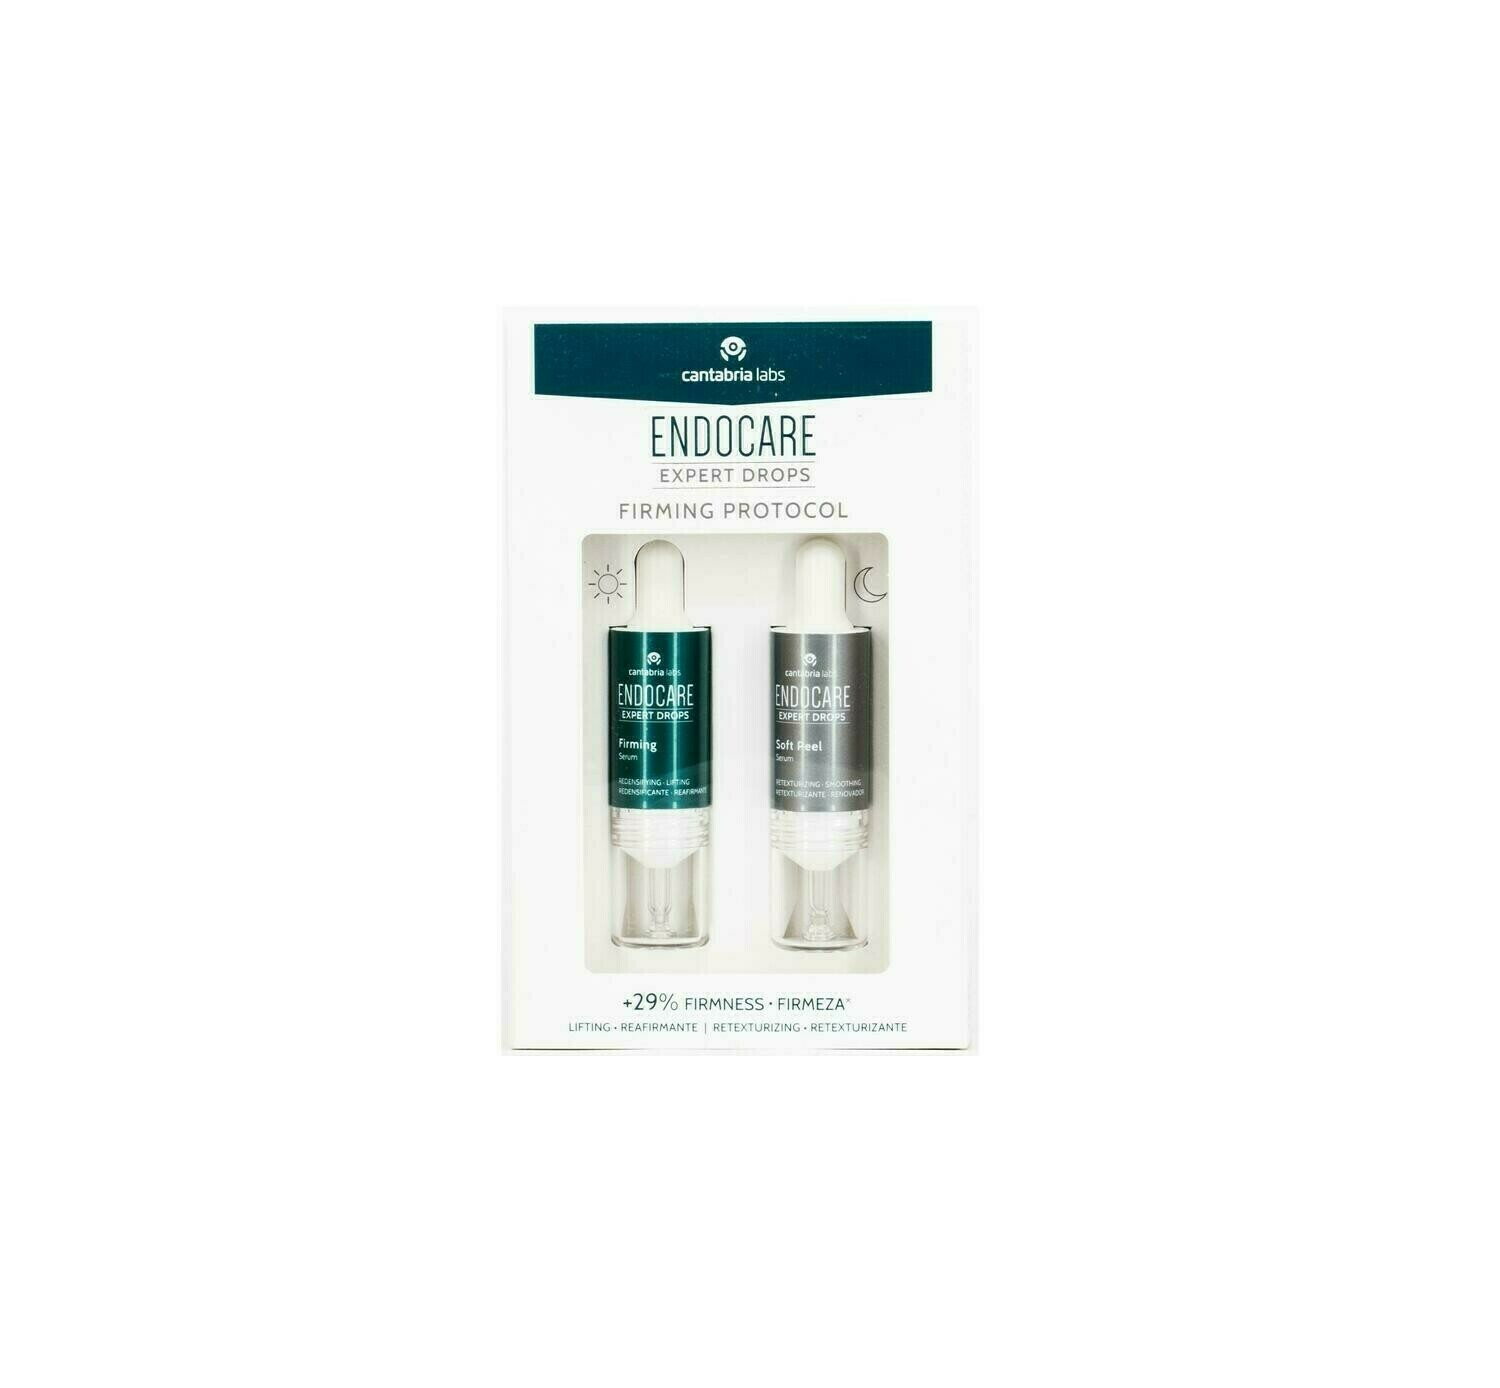 ENDOCARE EXPERT DROPS FIRMING PROTOCOL 2 X 10 ML